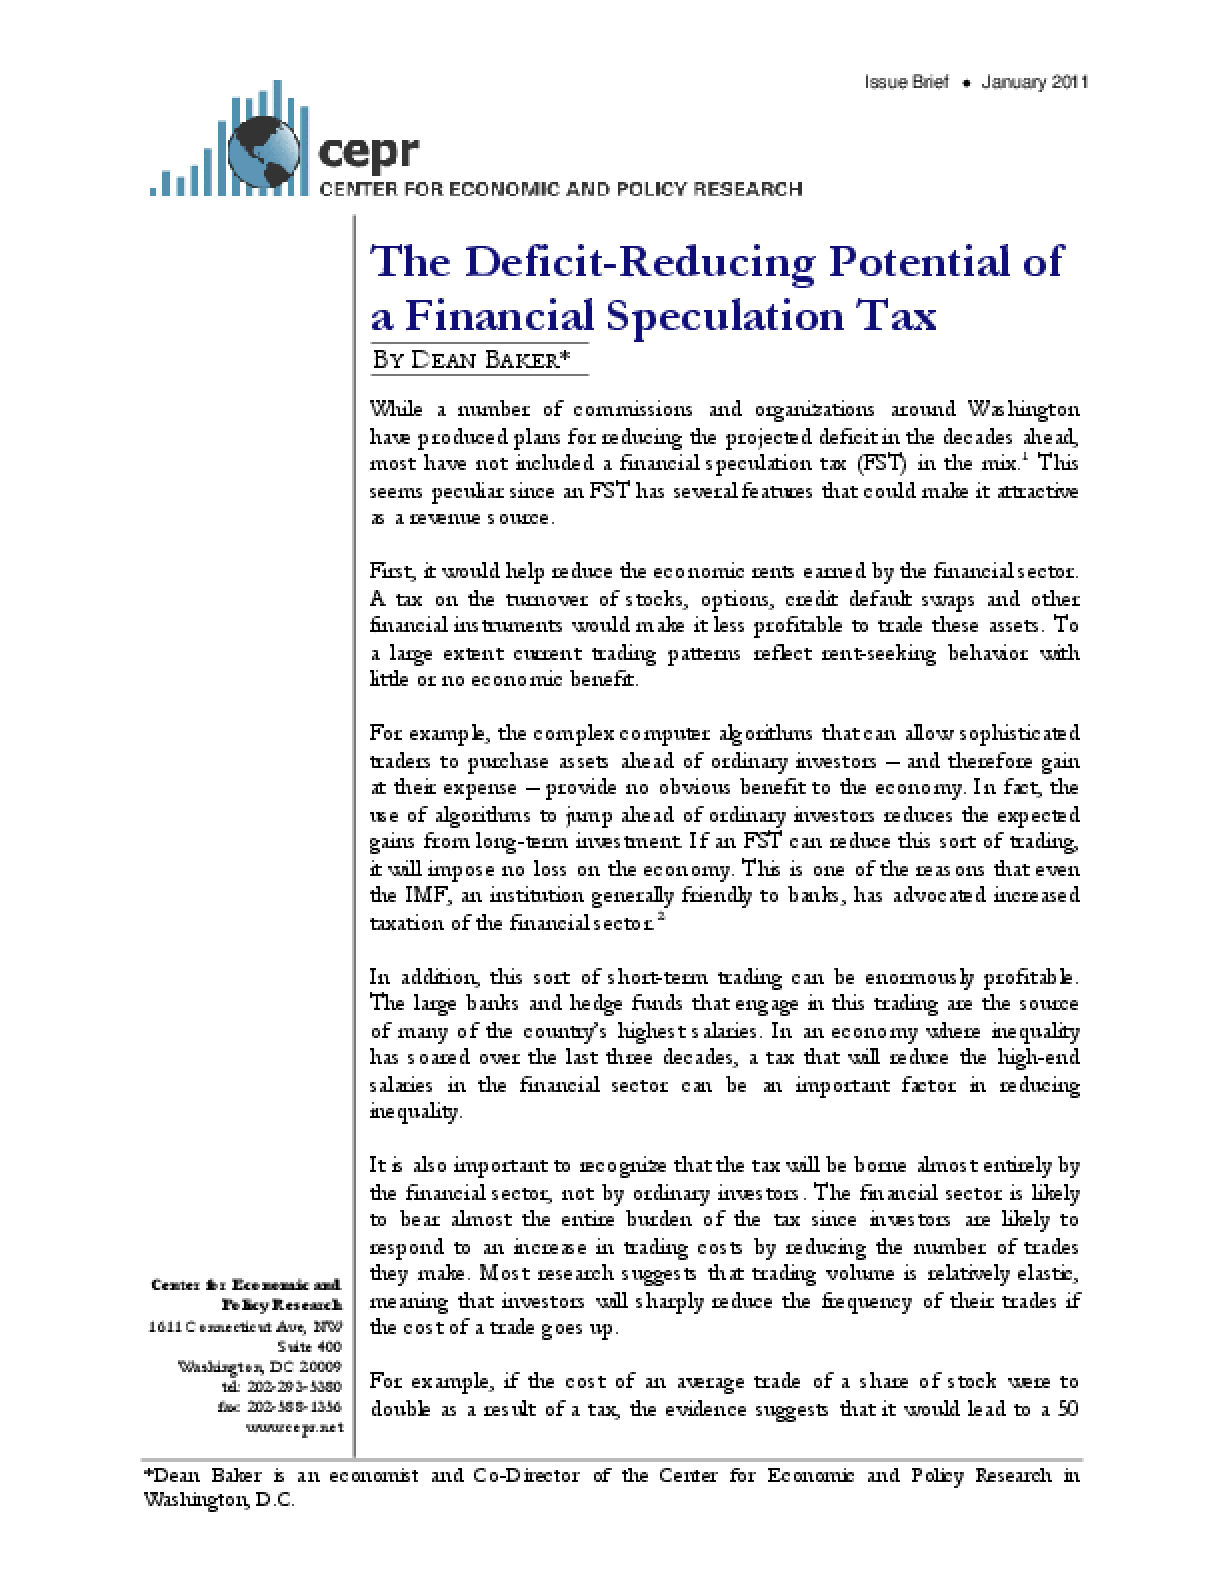 The Deficit-Reducing Potential of a Financial Speculation Tax